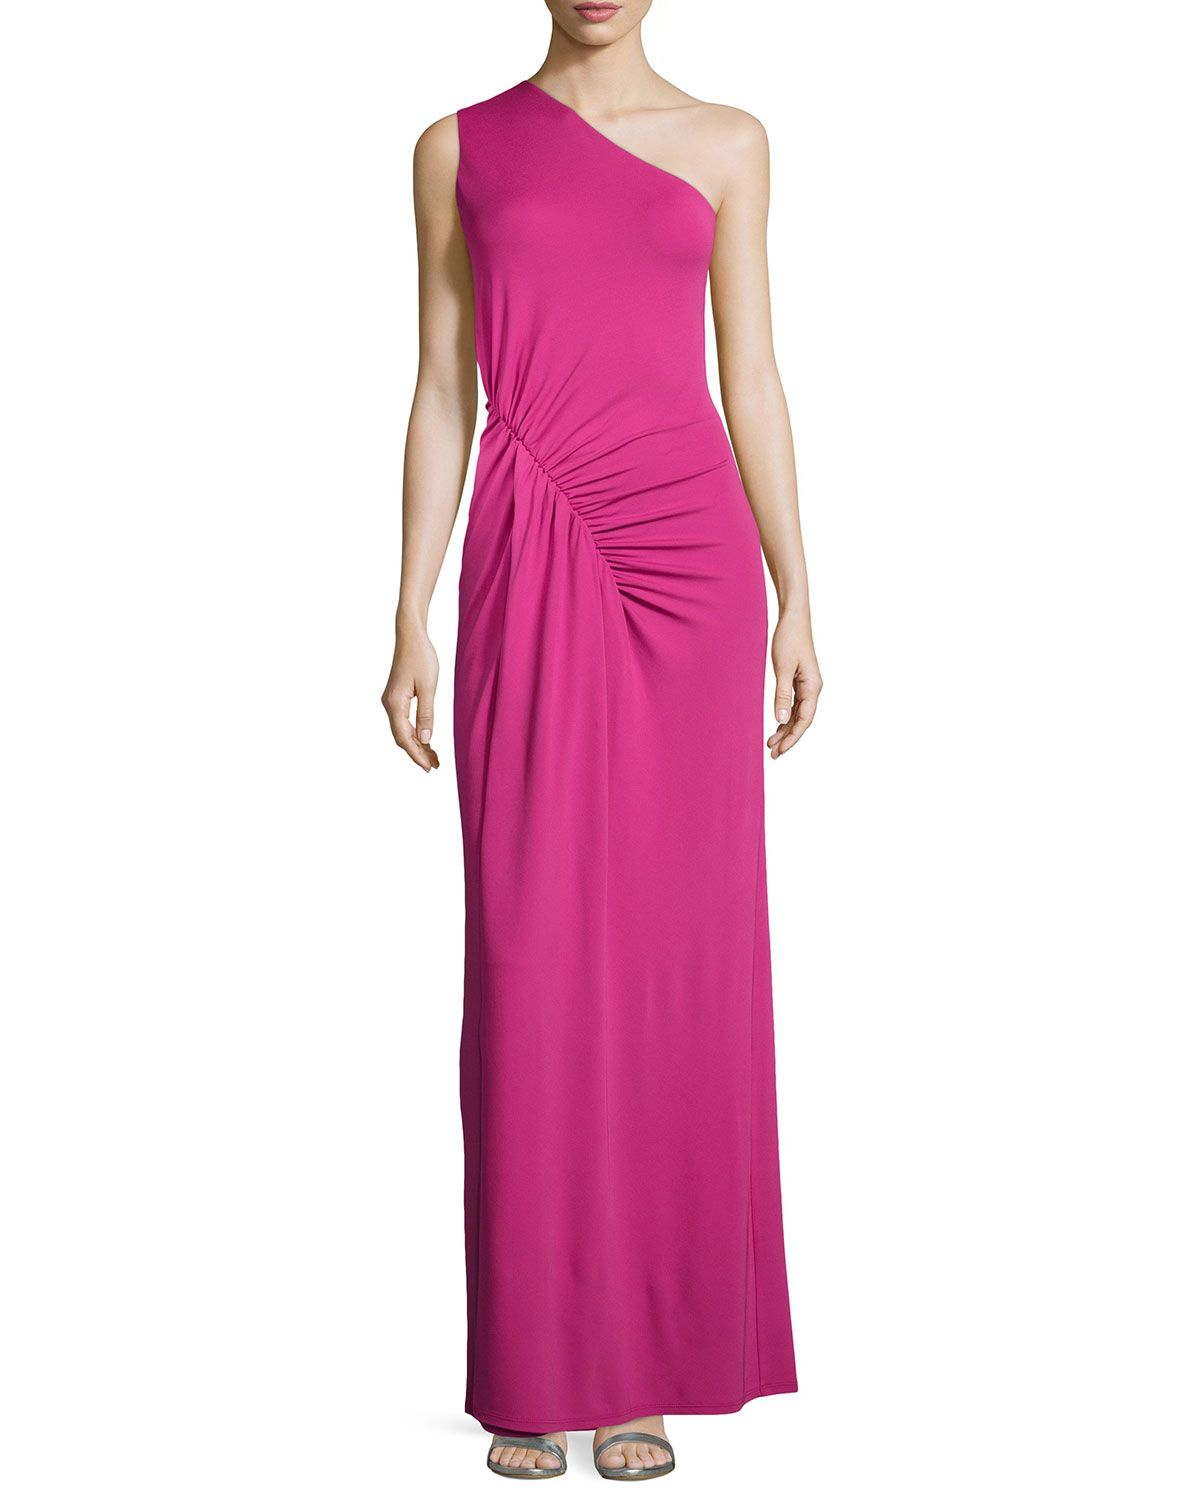 Michael kors oneshoulder ruched gown peony womenus size